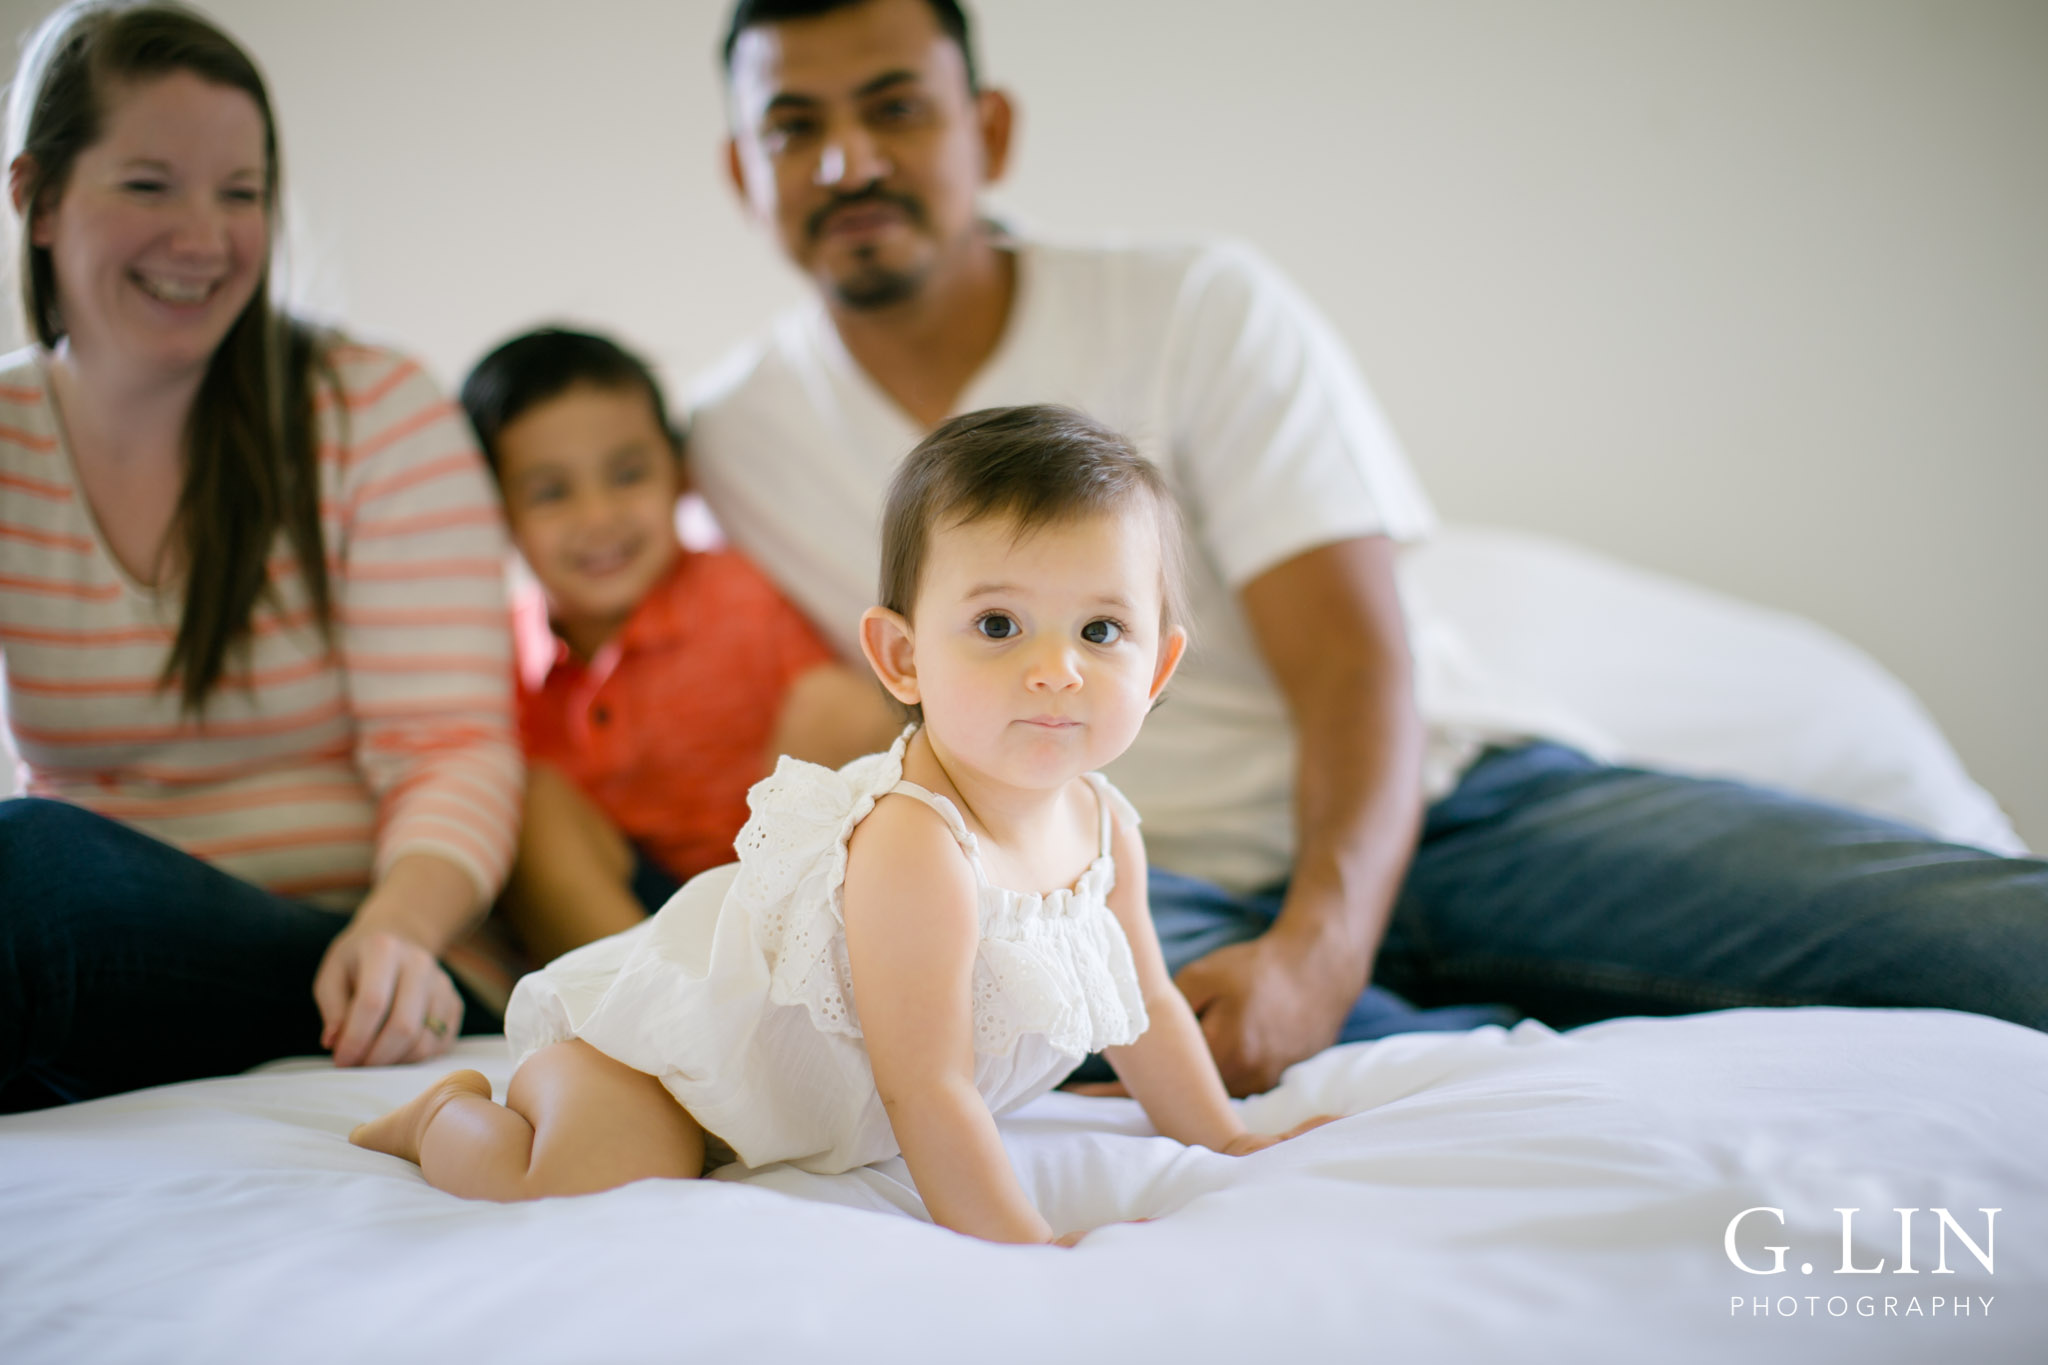 G. Lin Photography | Durham Family Photographer | Baby girl sitting on white bed with family in the background